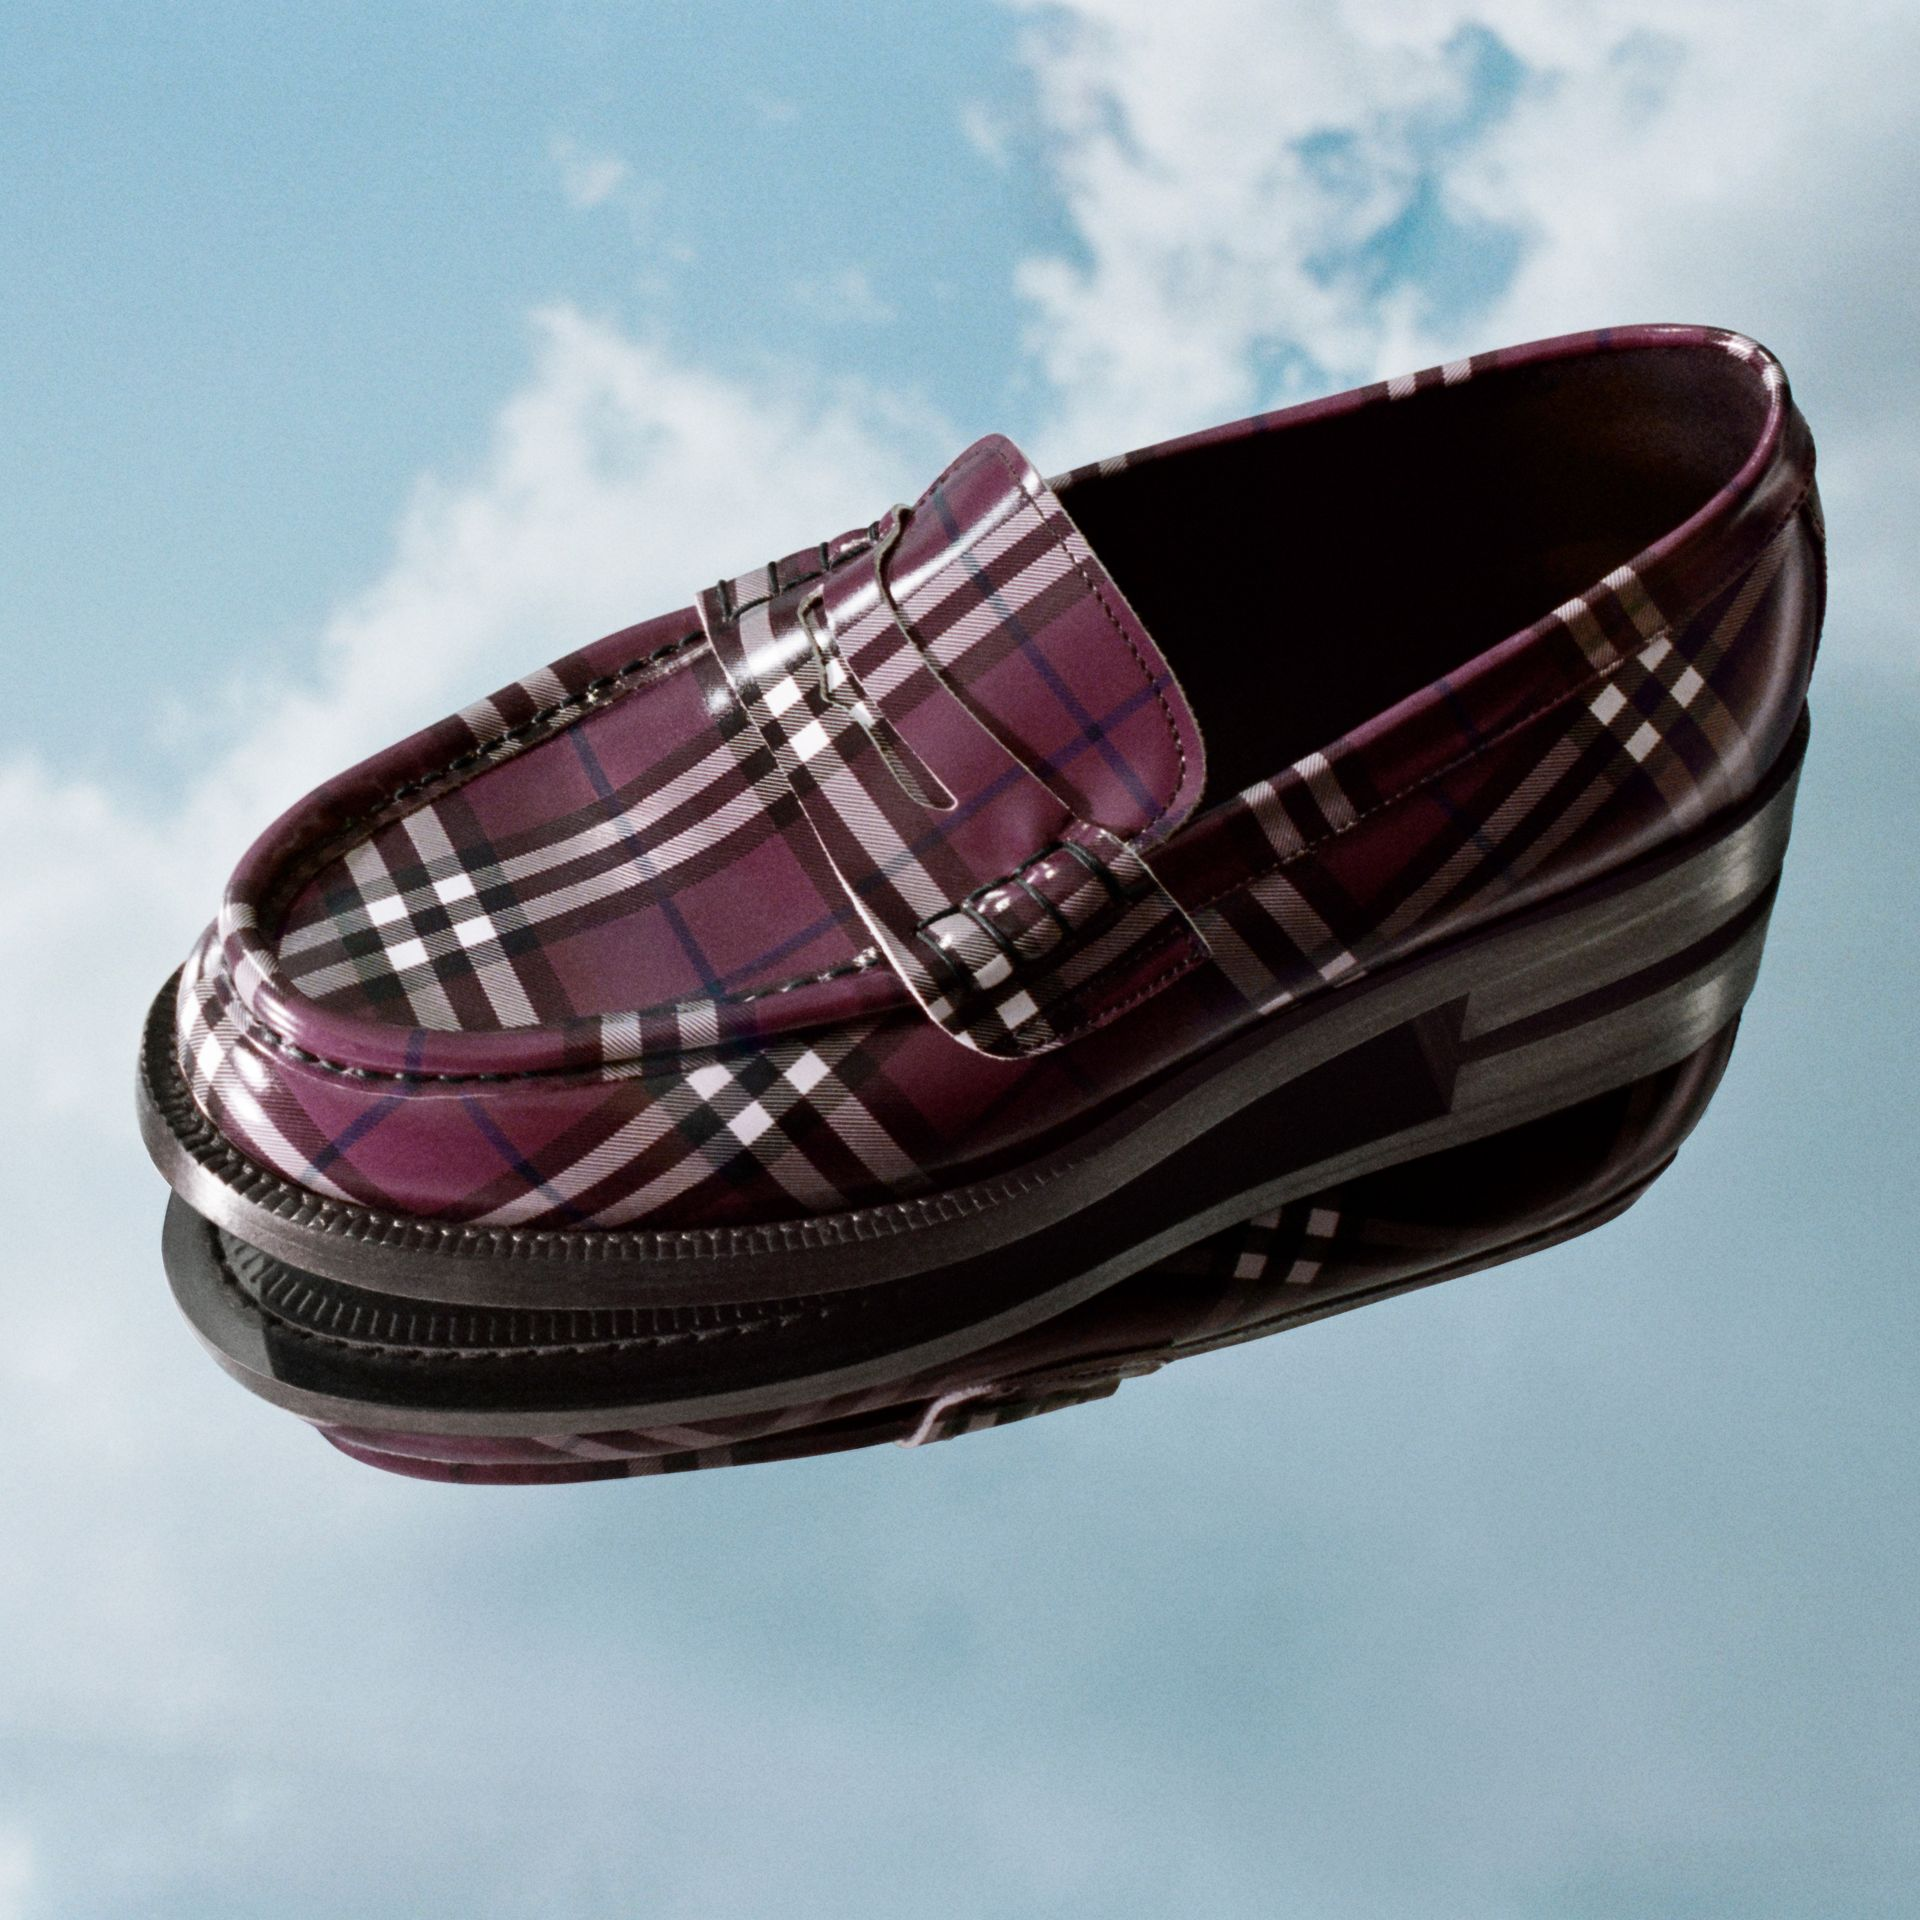 Gosha x Burberry Check Leather Loafers in Claret - Men | Burberry Singapore - gallery image 1